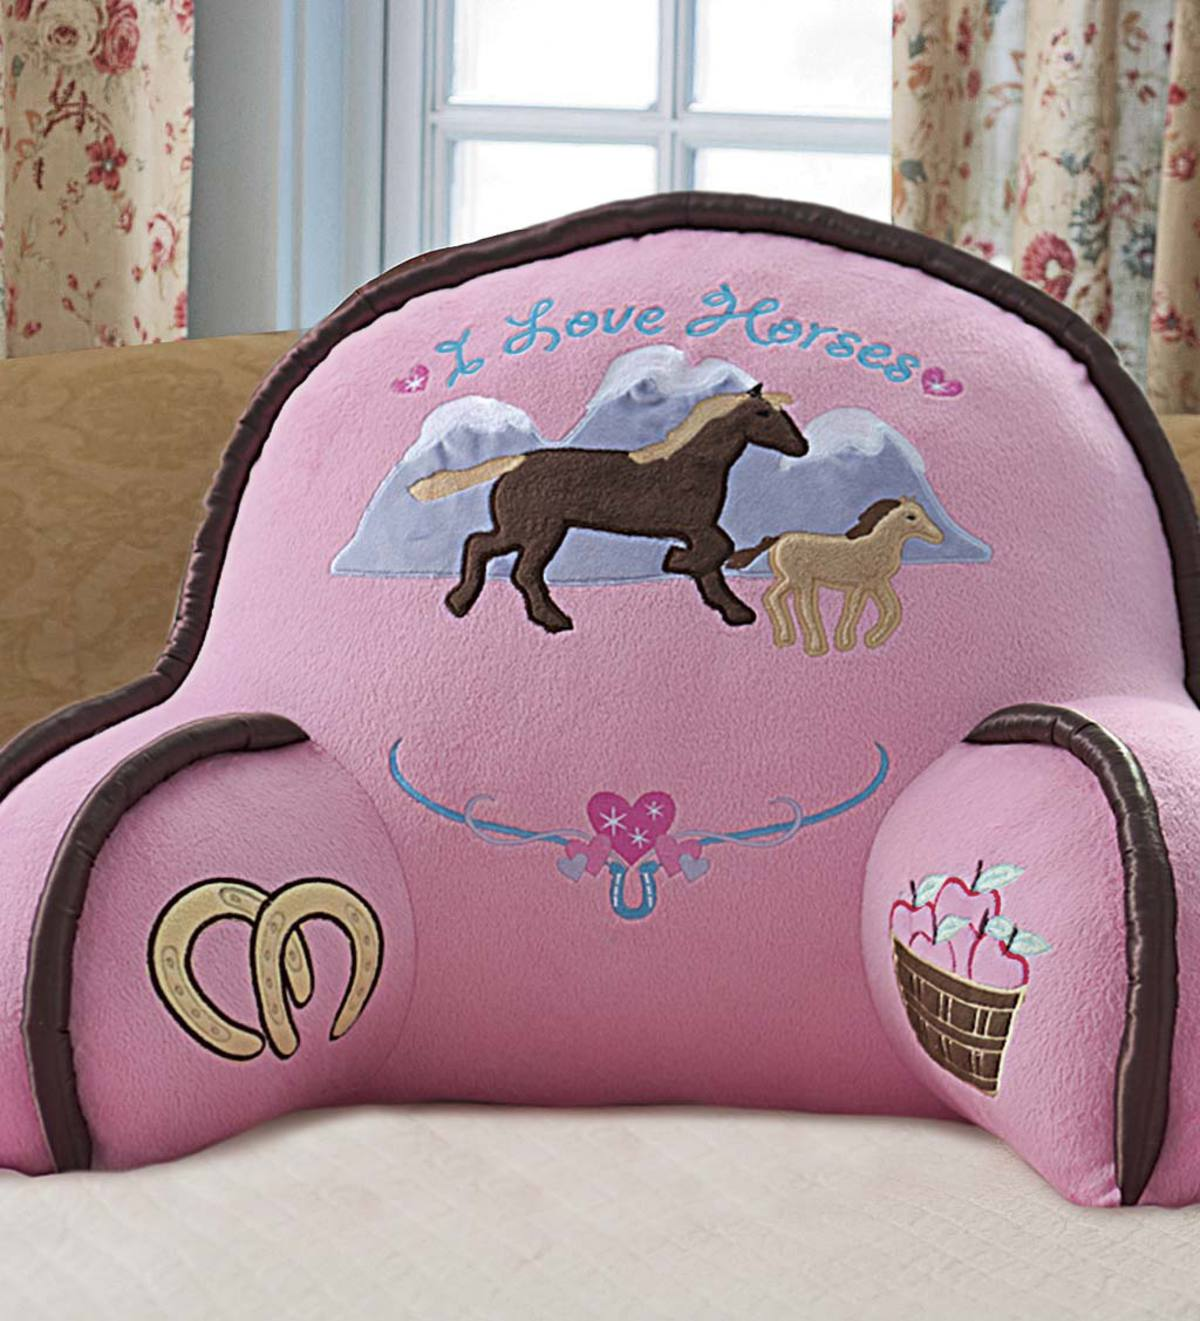 I Love Horses Lounge Pillow